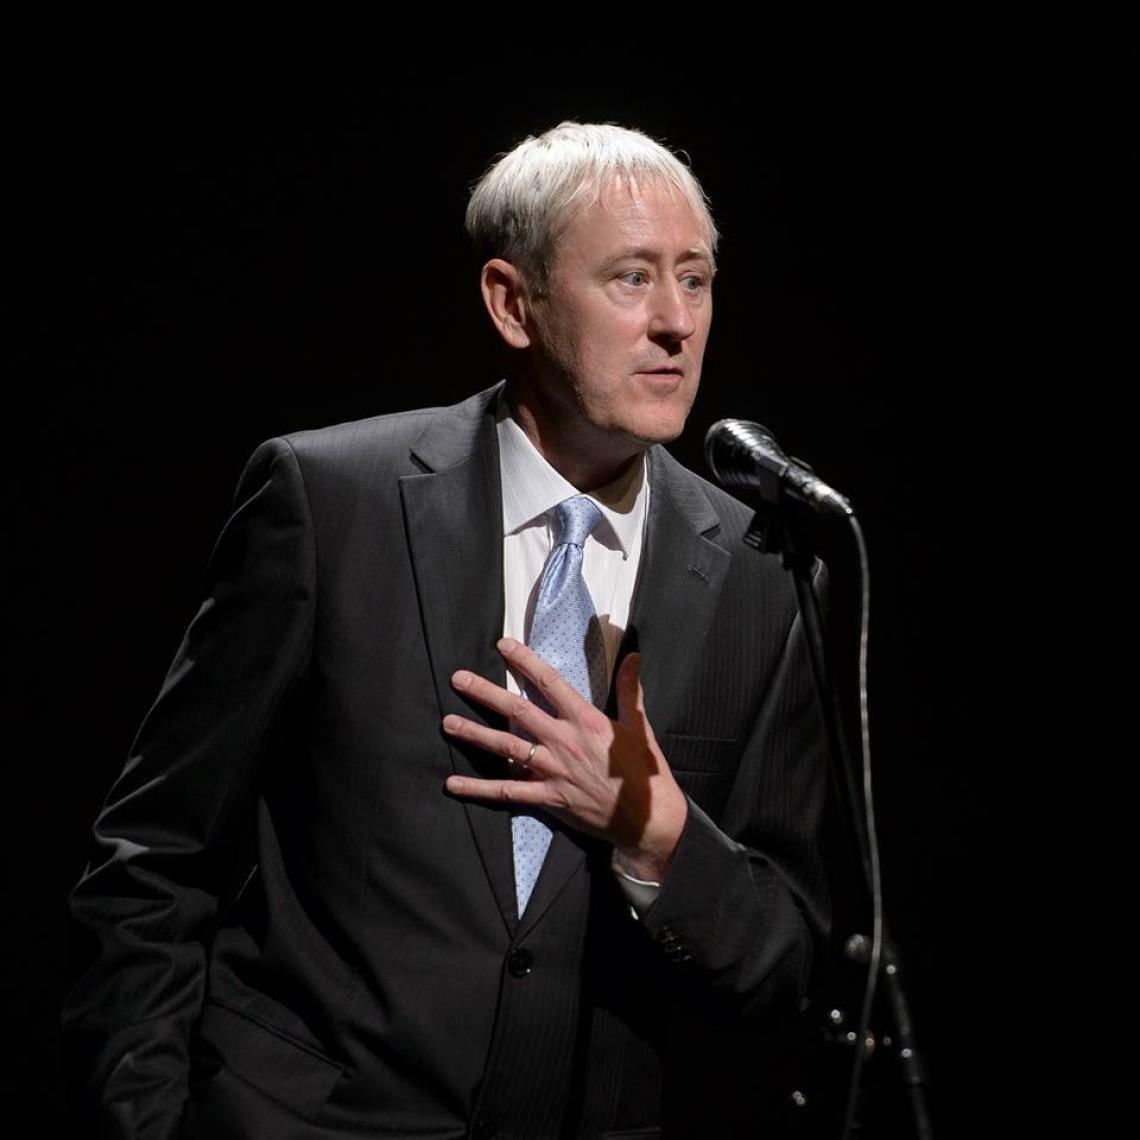 Nicholas Lyndhurst speaking at the Montenegrin National Theatre